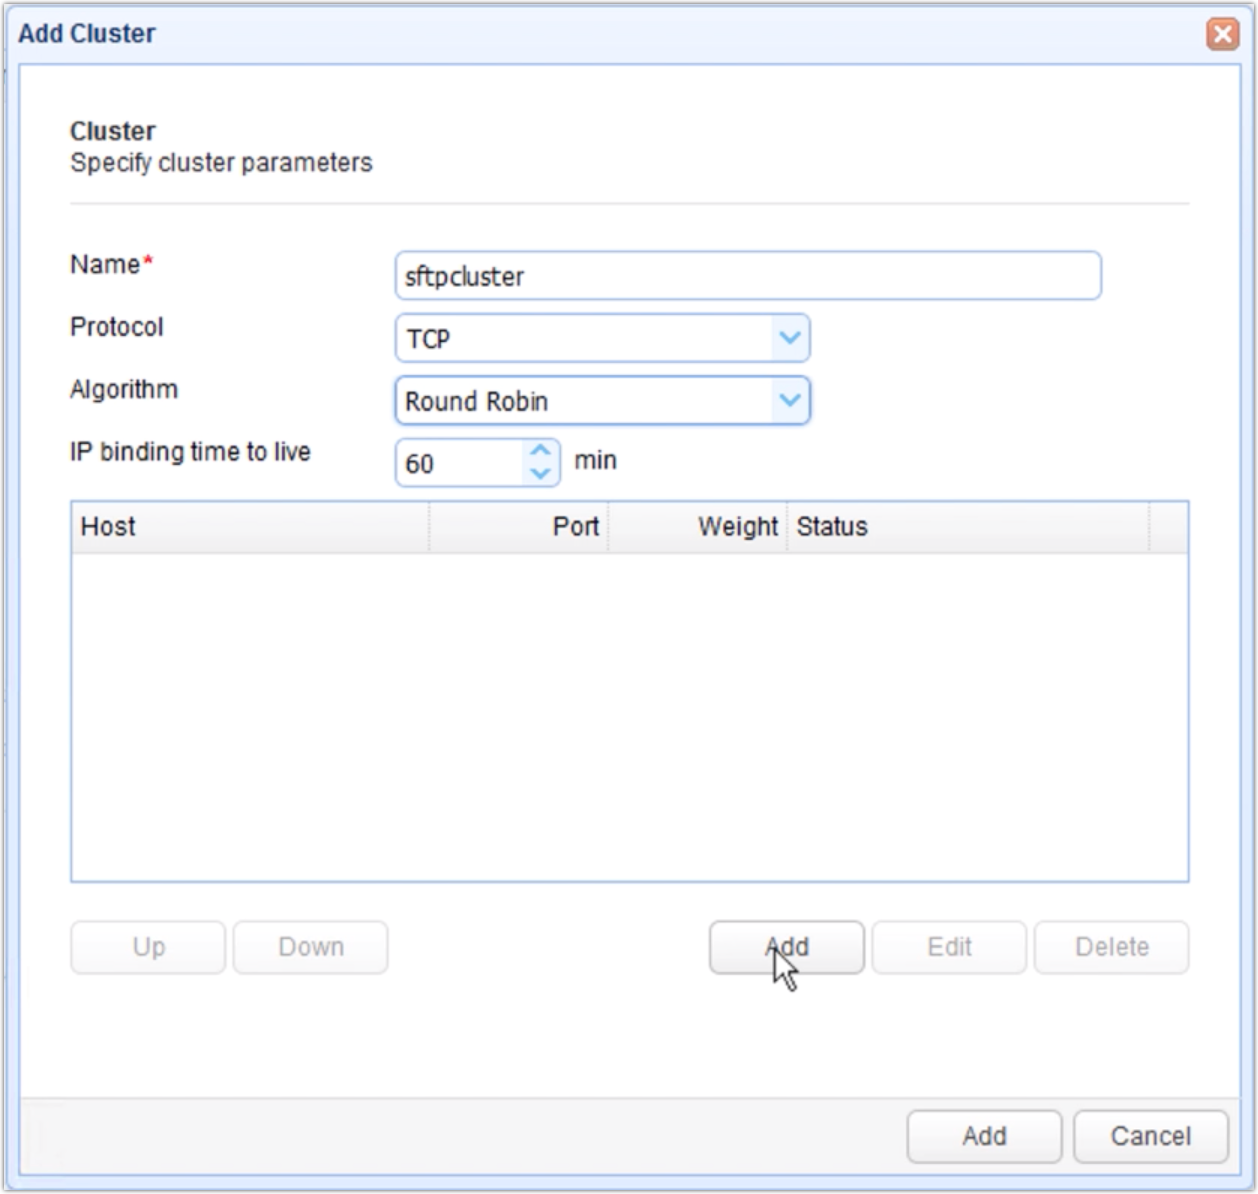 add host 1 to the high availability cluster